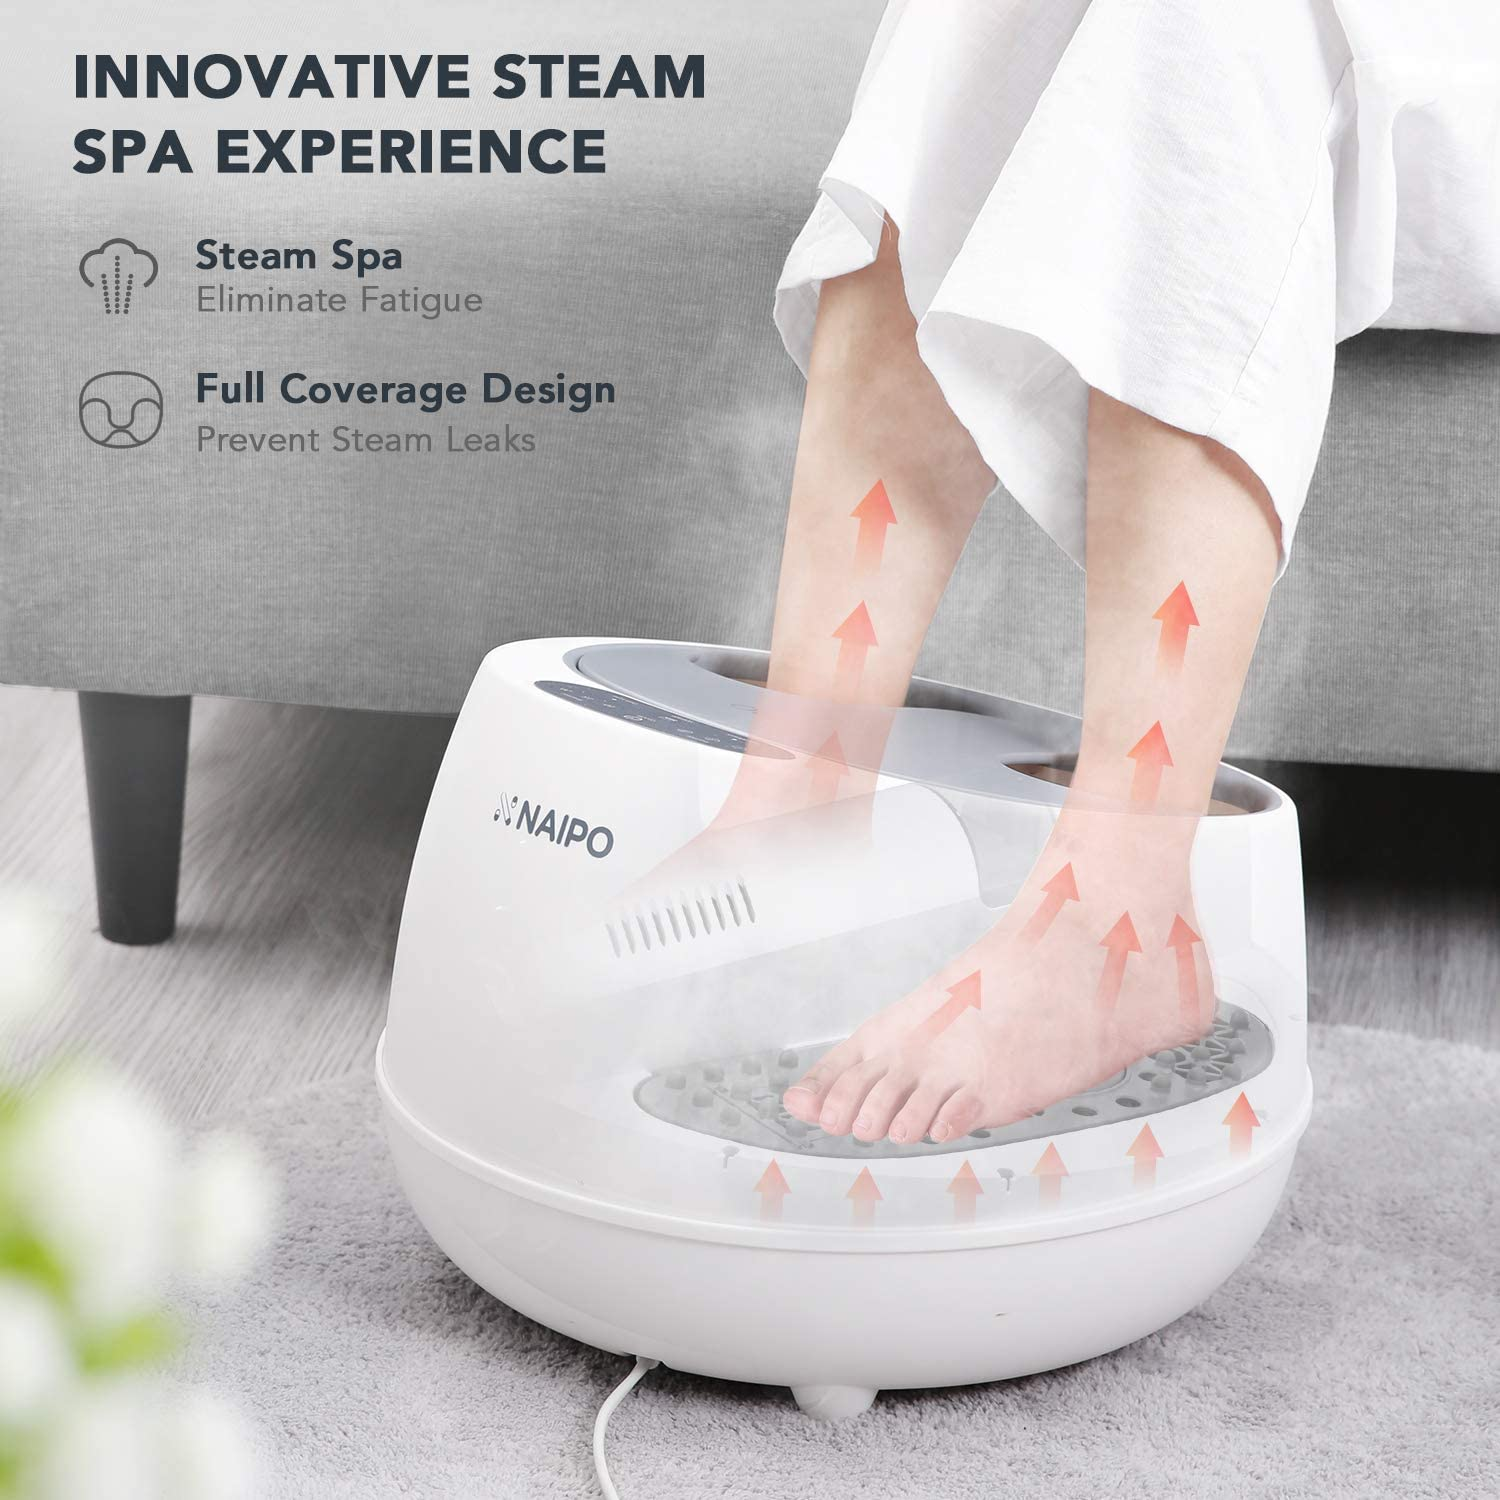 oFlexiSpa Steam Foot Spa Bath Massager with Electric Rollers, 3 Heating Levels and 2 Intensities for Feet Reflexology, 3 Adjustable Timers, Soothe Tired Feet, Water Saving Technology for Home Use: Health & Personal Care